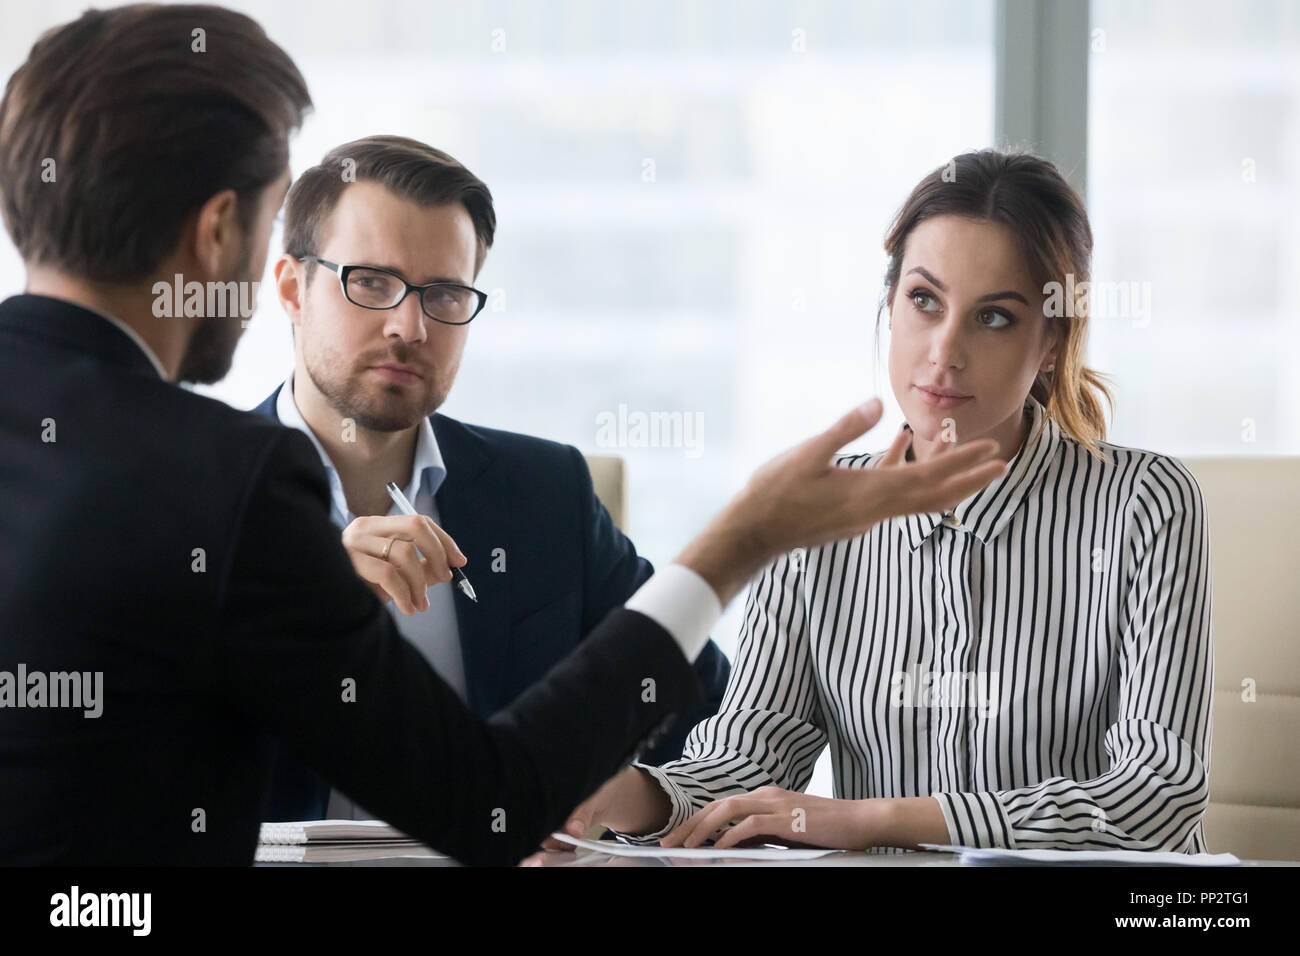 Male job candidate make bad first impression on recruiters - Stock Image